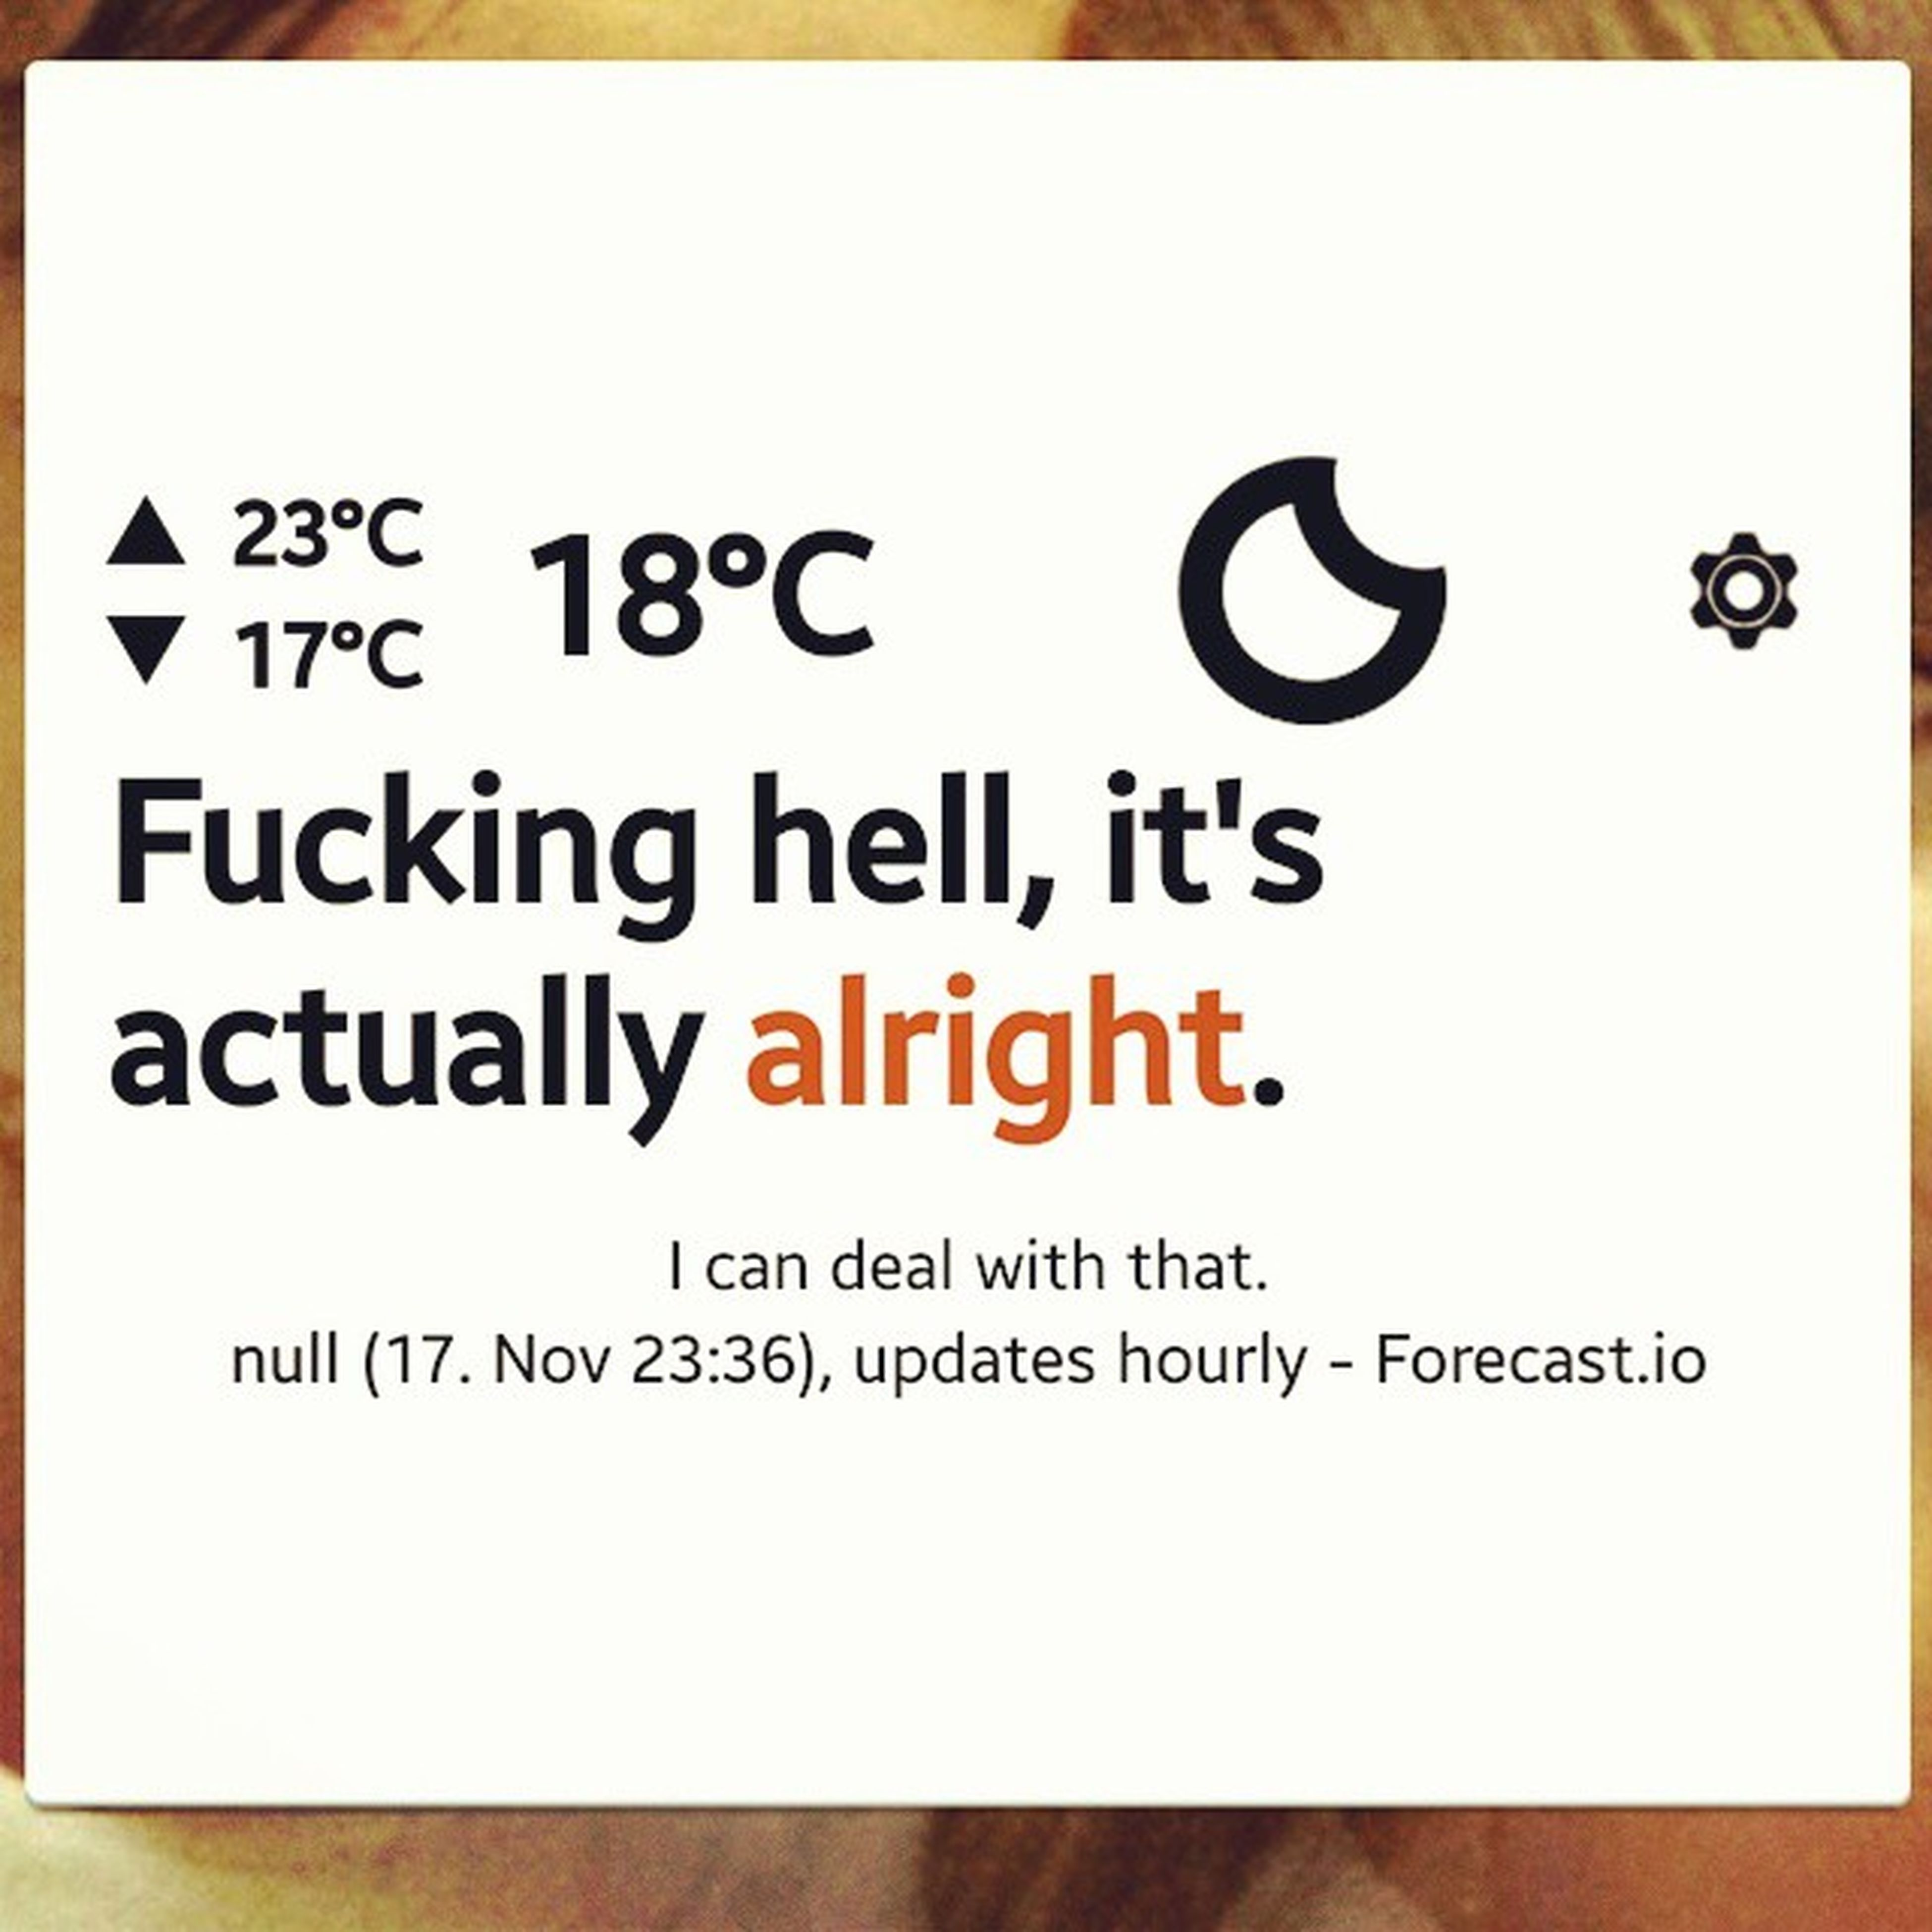 😂😂😂 exactly how I feel about the weather now Fuckingweather Alright HongKong Funnyapp